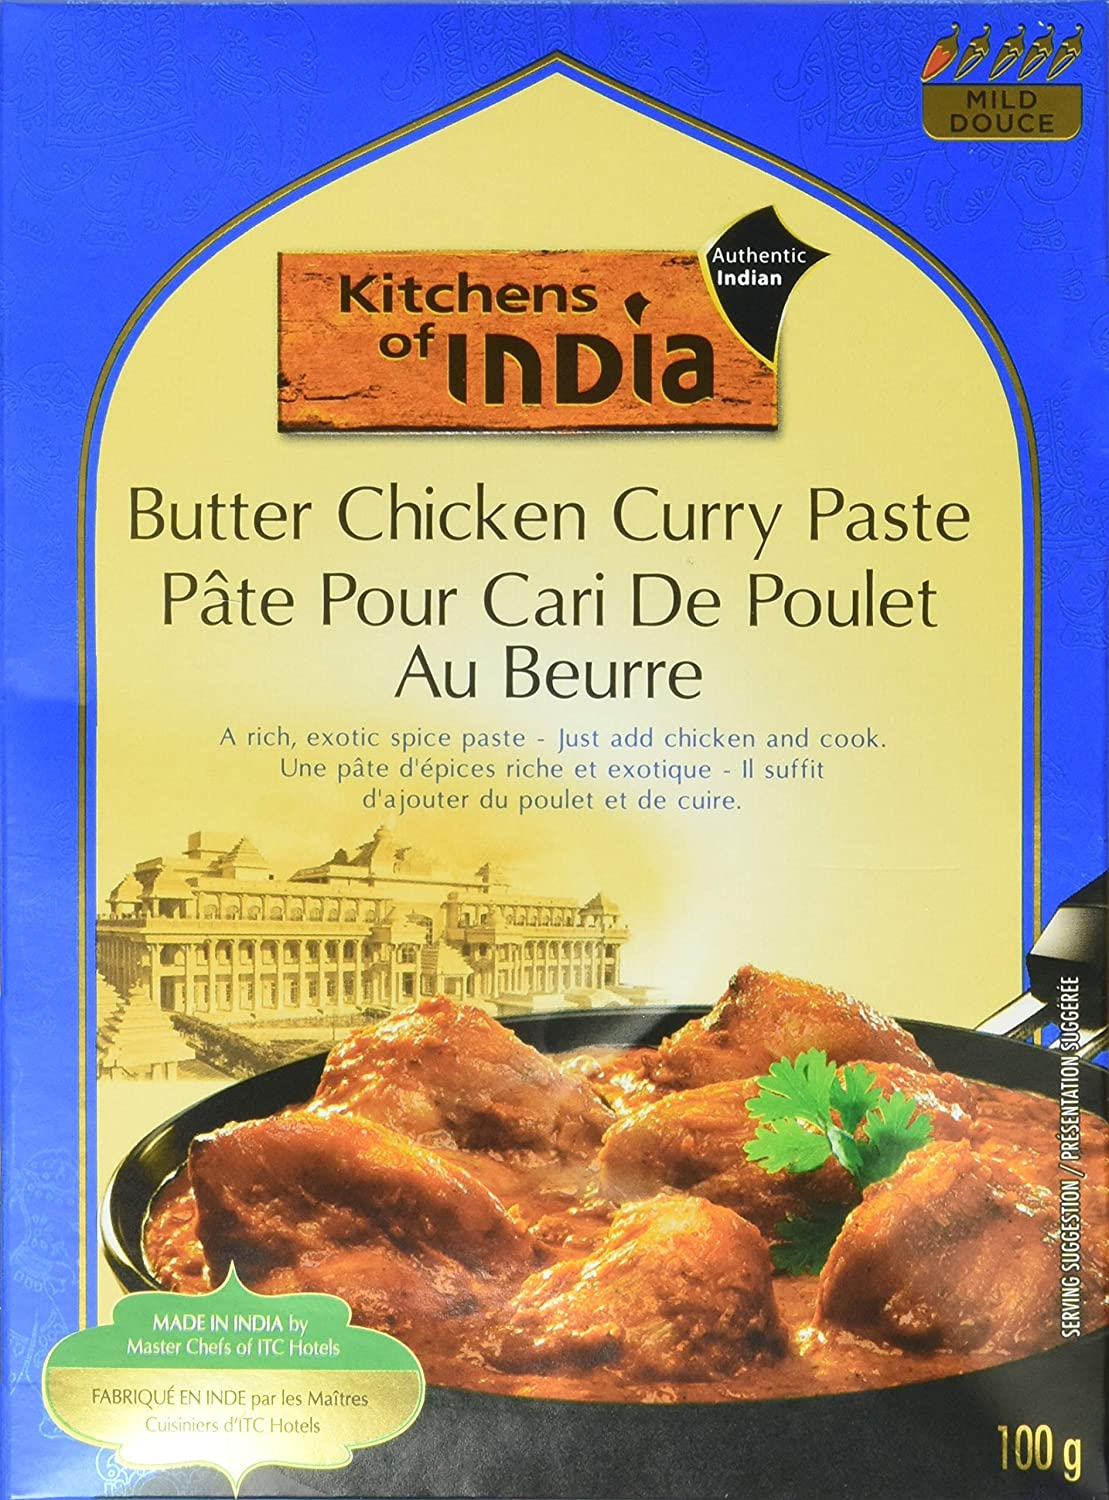 Kitchens of India Paste, Butter Chicken Curry, 3.5-Ounces, Pack of 1 (6 count)